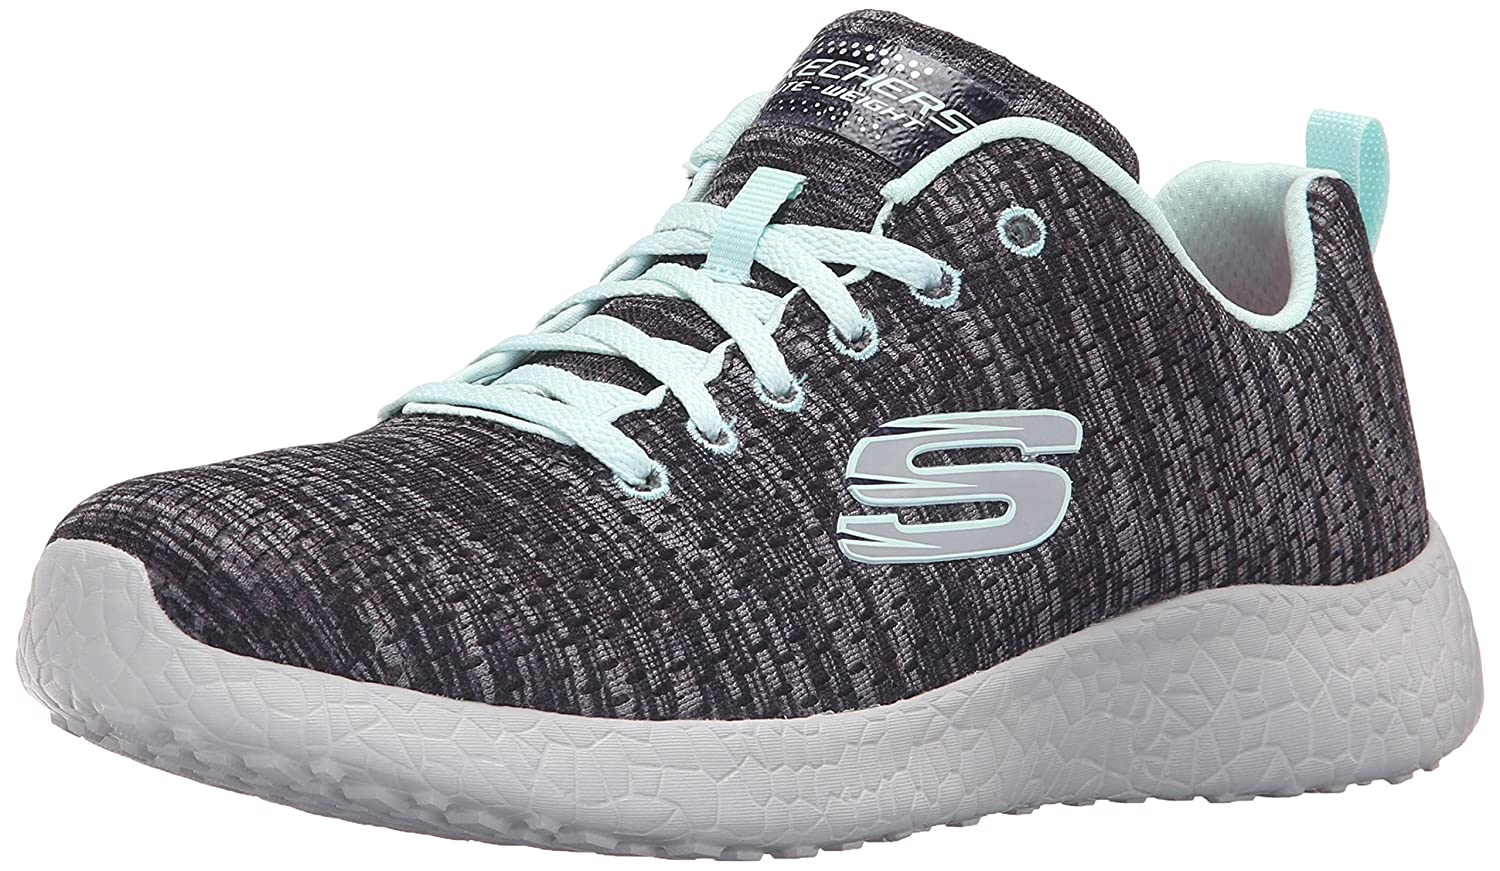 Skechers Burst New Influence - Botas Mujer 38 EU|Negro